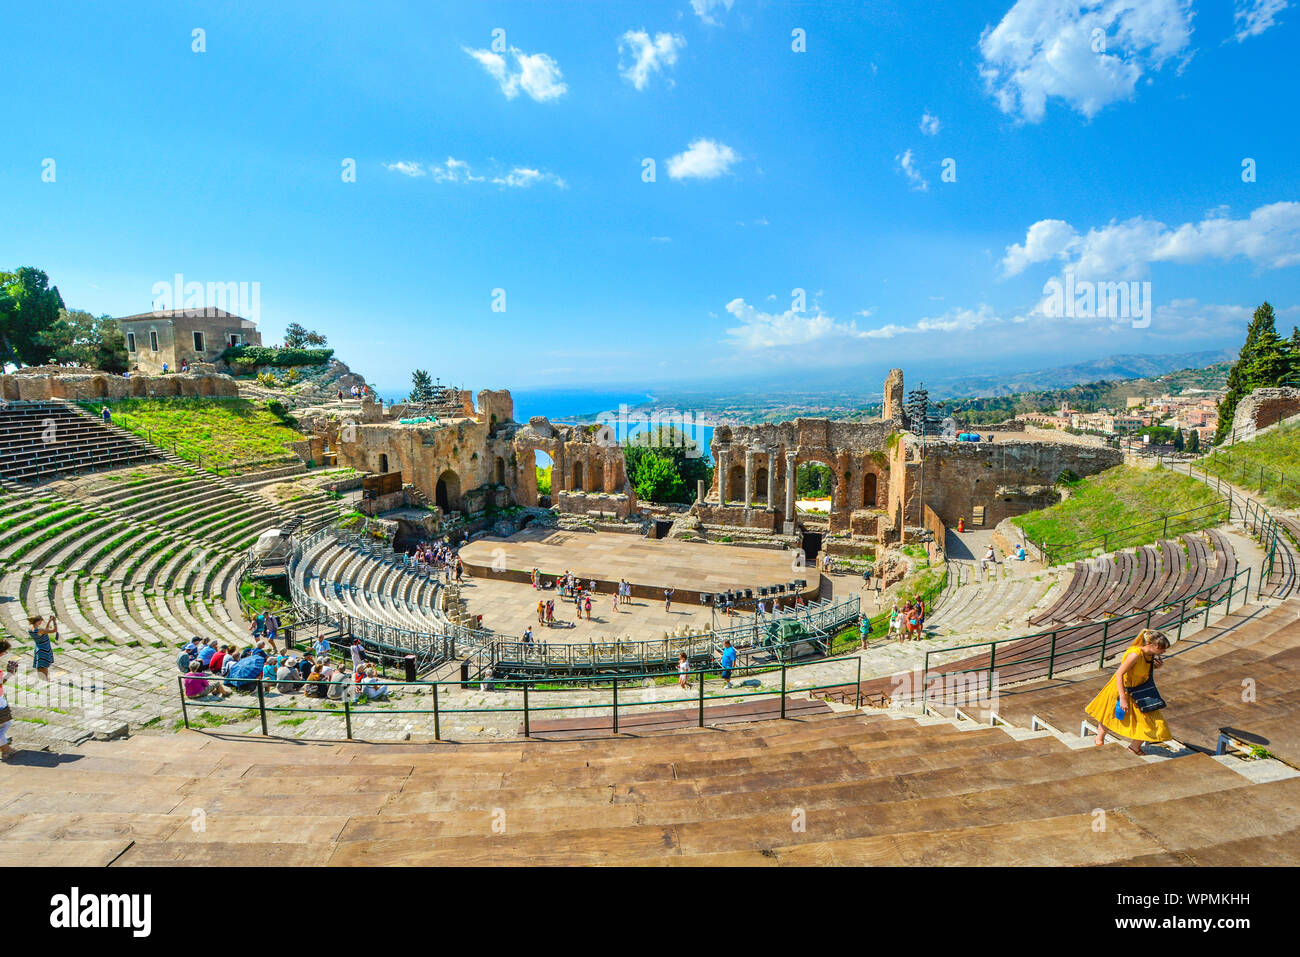 A woman walks up the ancient stairs at the Greek Theatre in Taormina, Italy on the Italian island of Sicily. Stock Photo